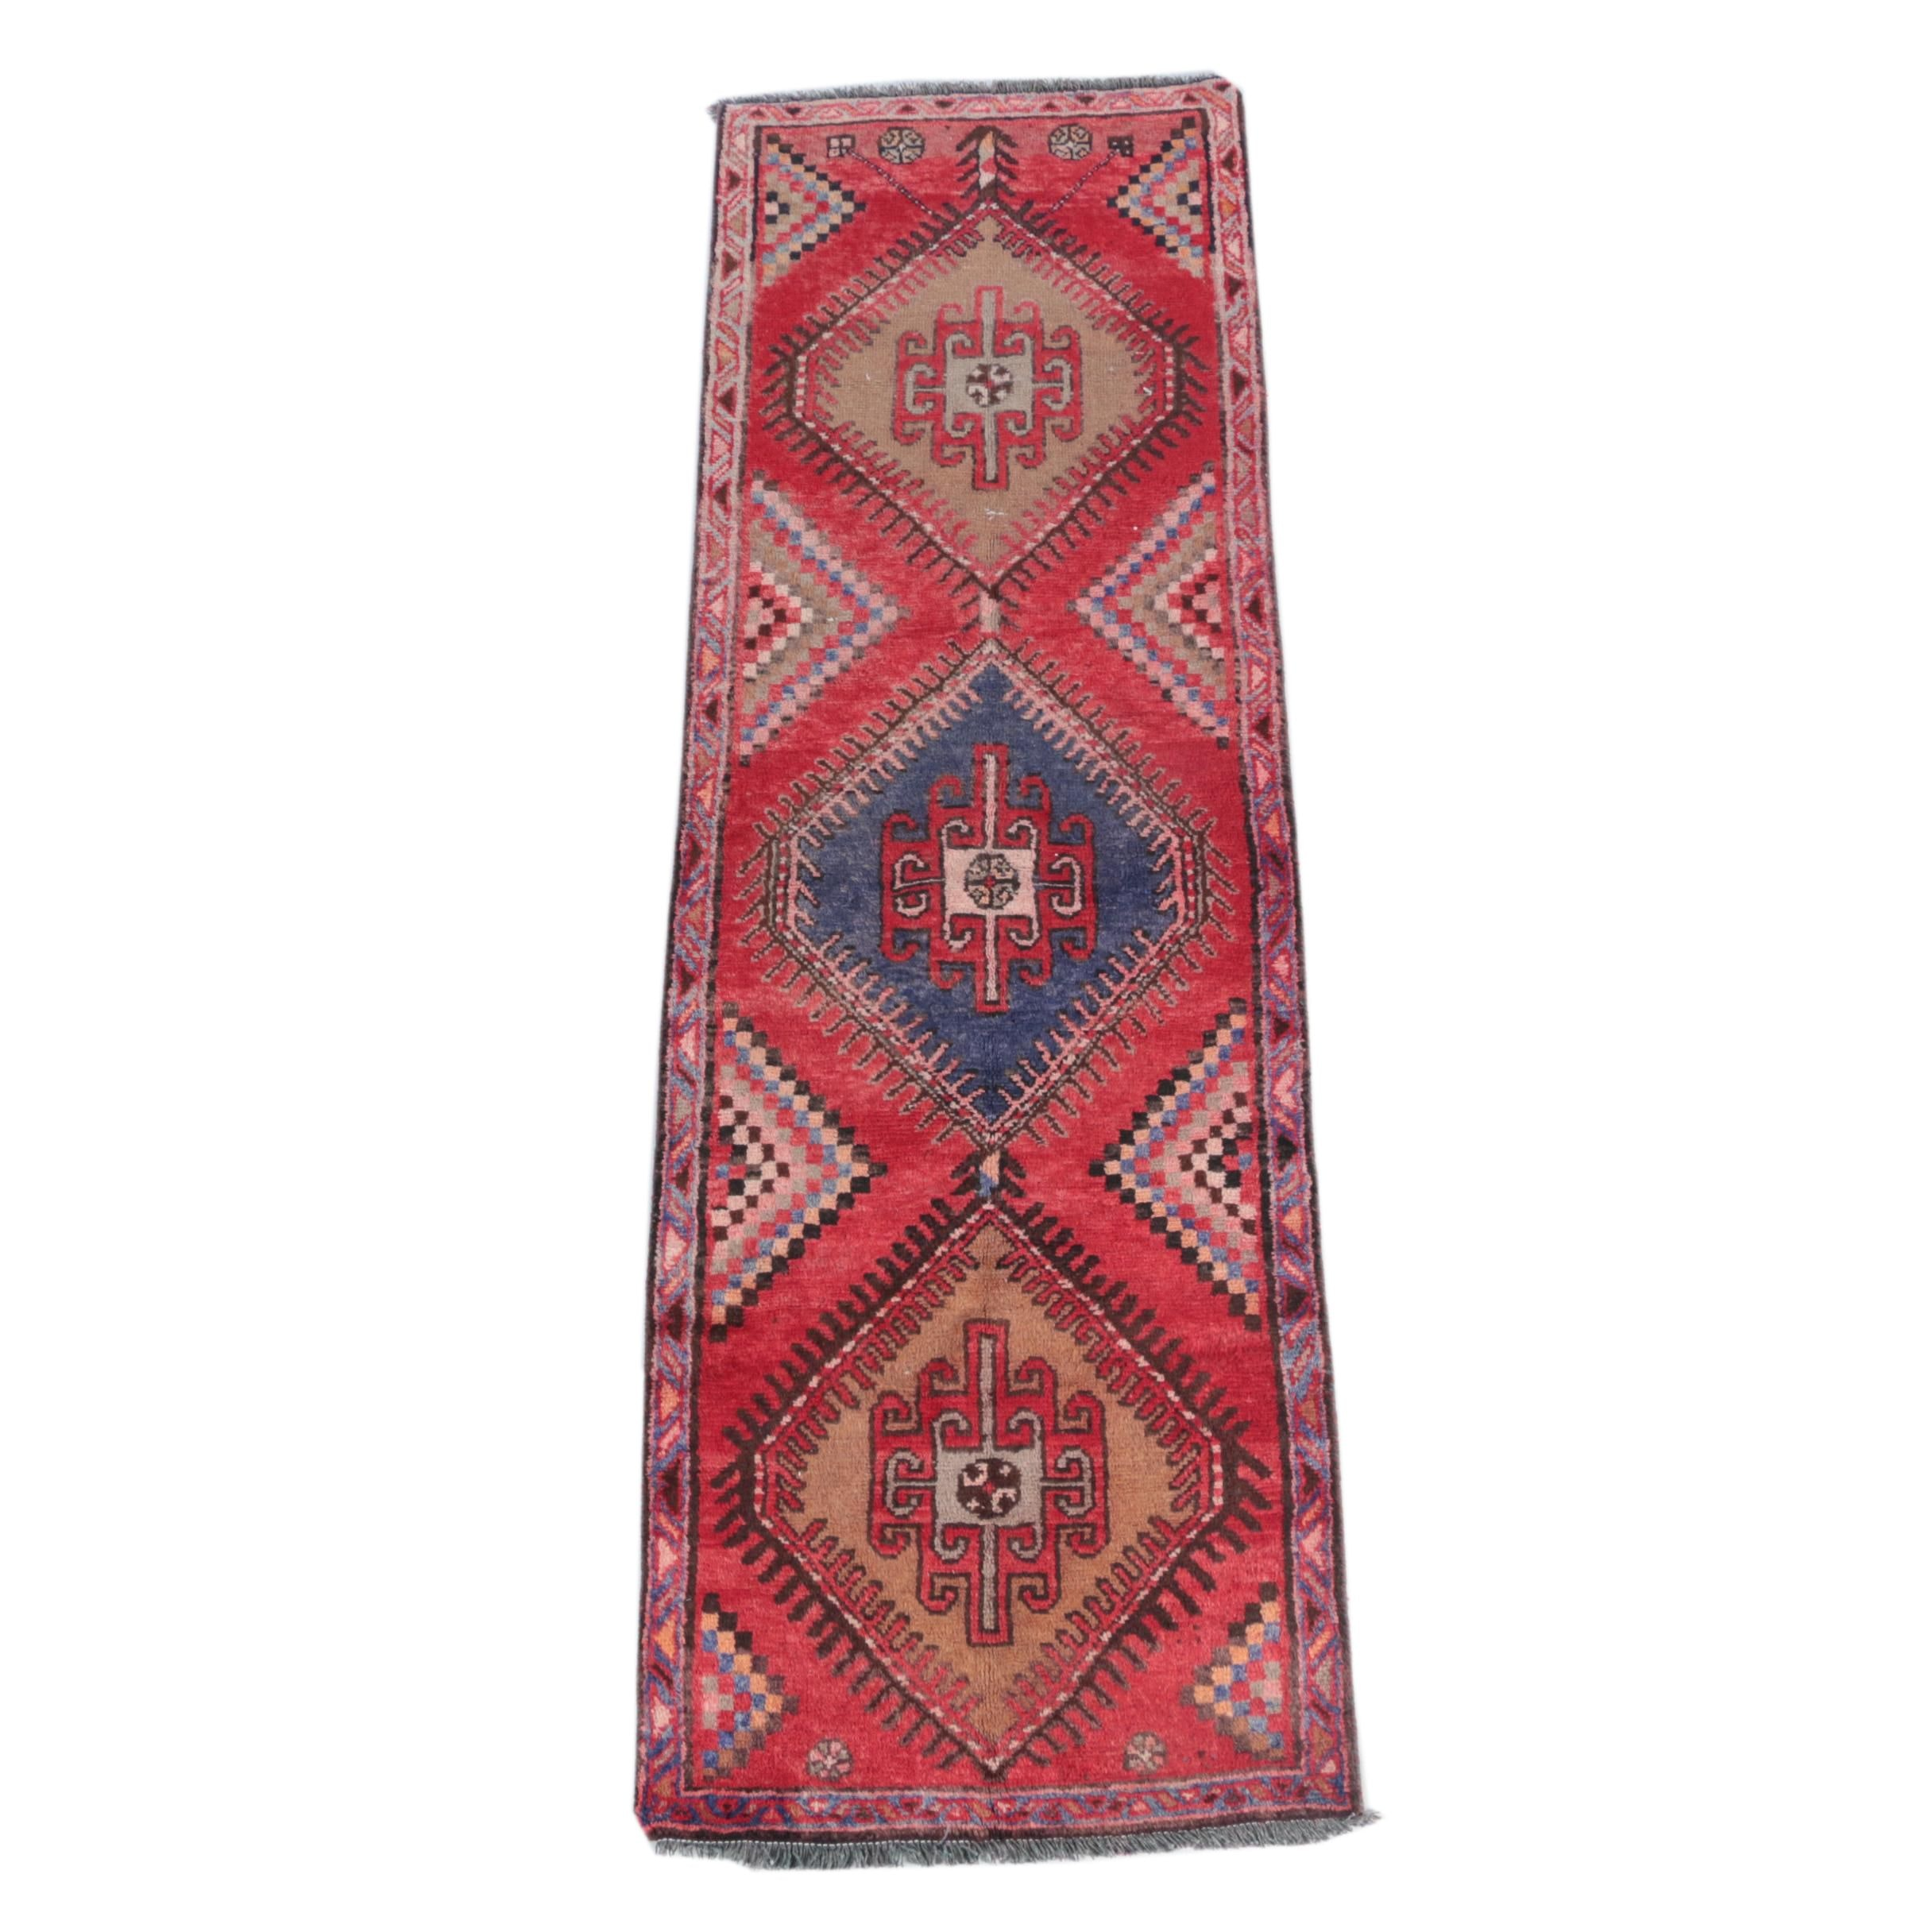 Hand-Knotted Central Asian Carpet Runner